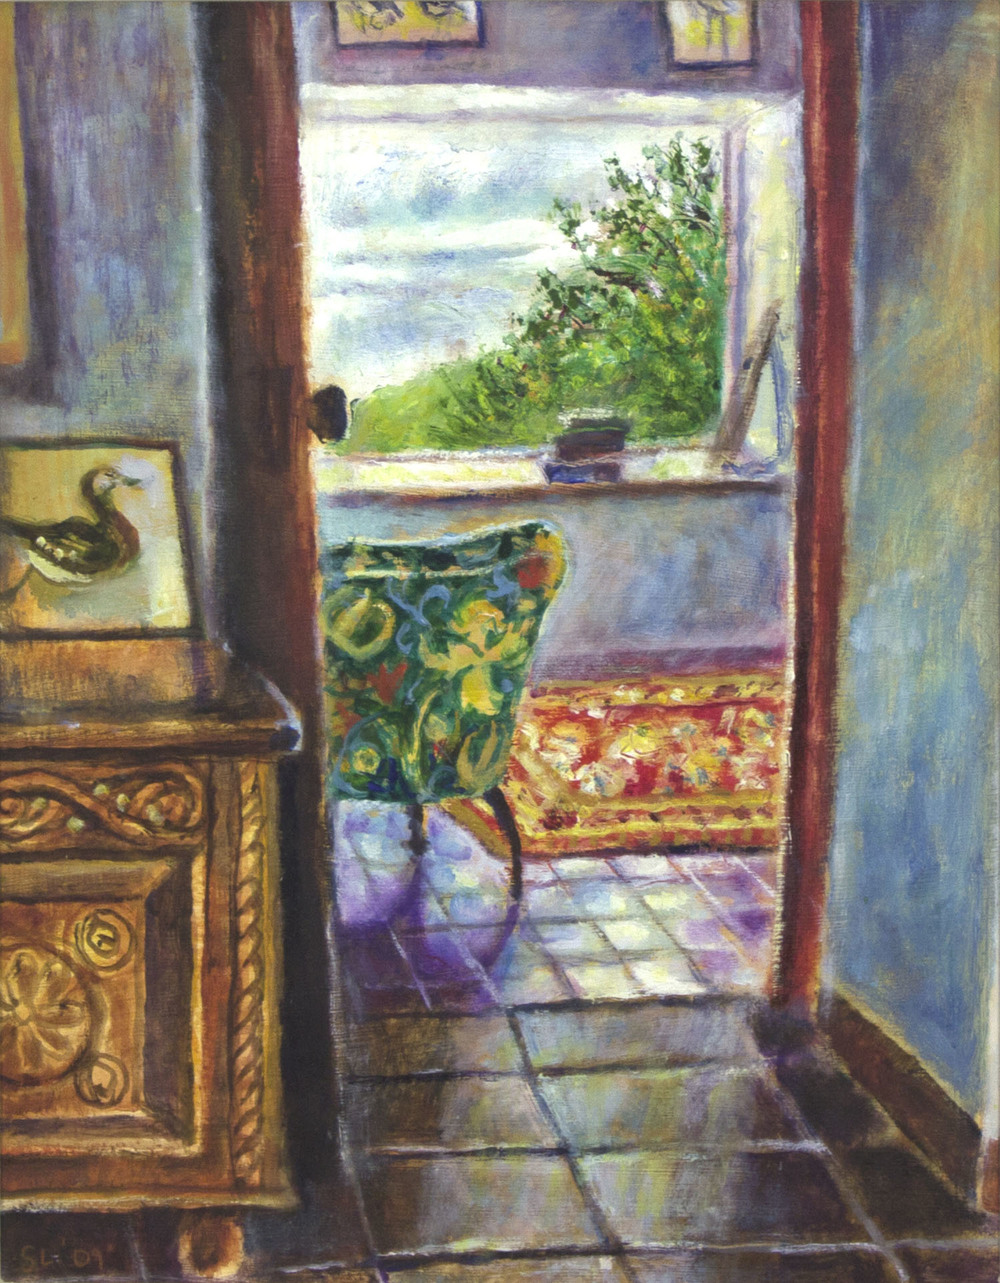 Sarah Longley 'Interior With Green Chair' oil on board 35x27cm.jpg